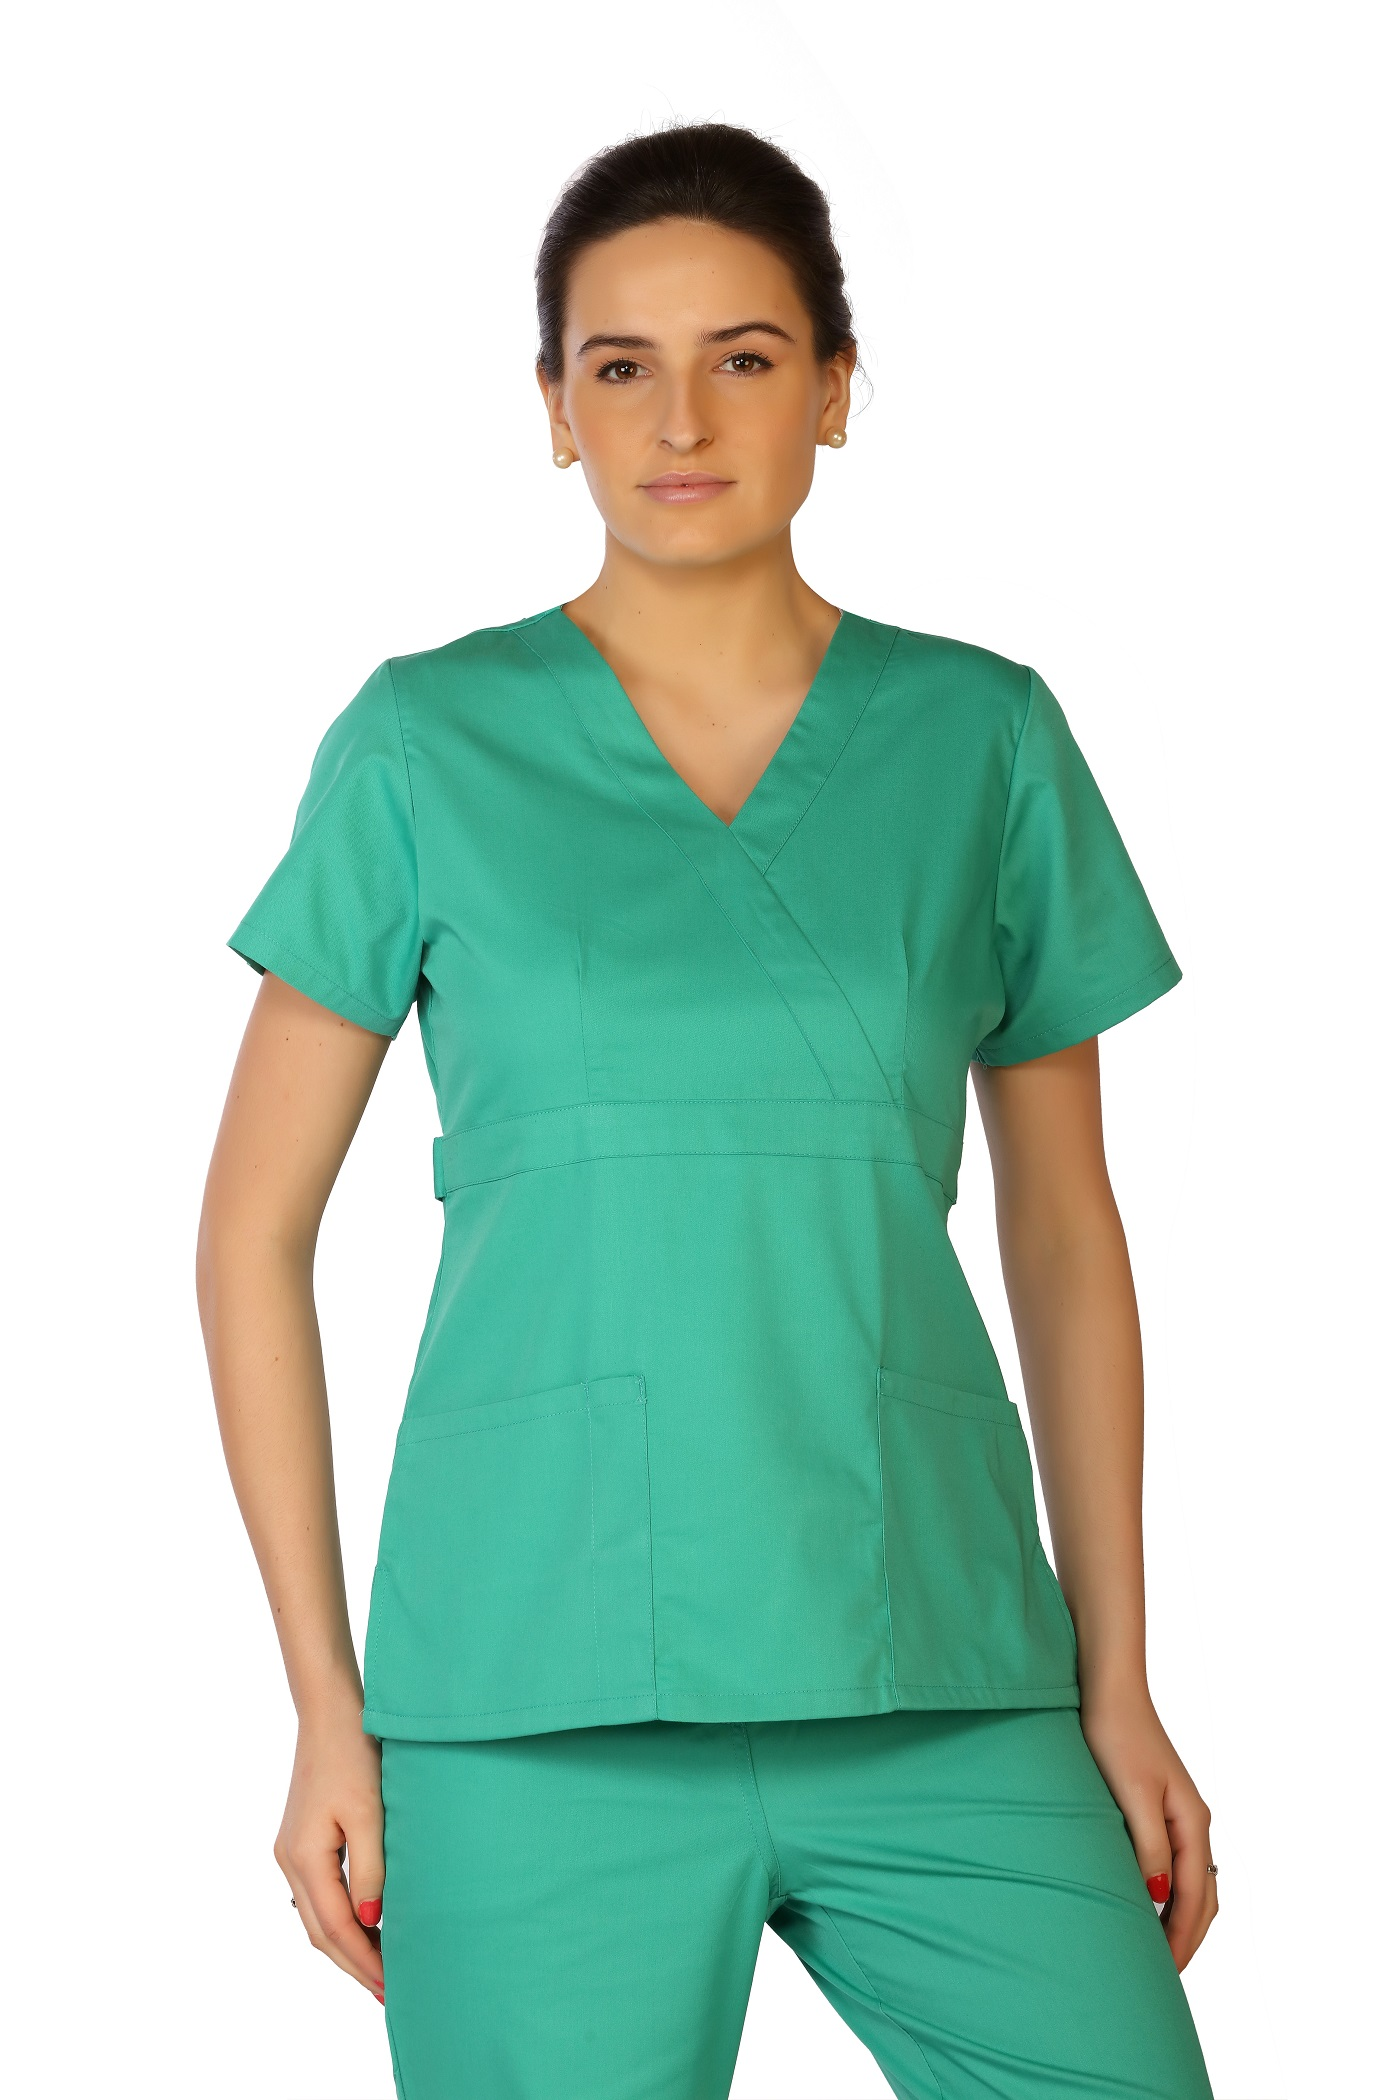 Women's Mock Wrap Scrub Top, LifeThreads Classic Collection